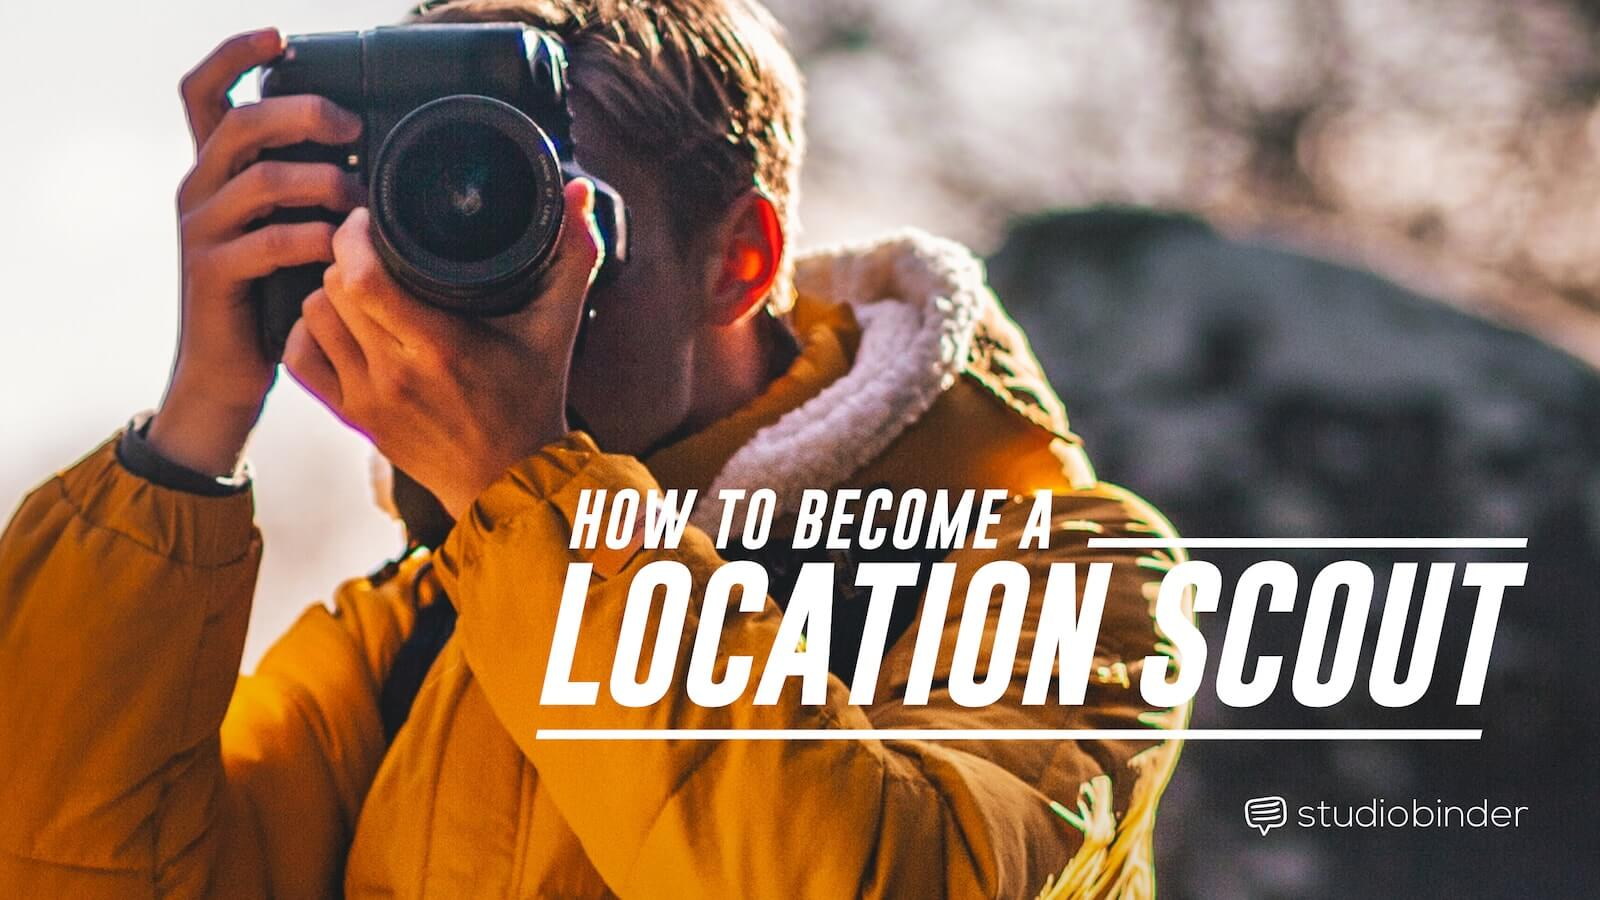 Learn how to become a location scout to find the best filming locations for your next shoot. Our tips and tricks will get you signing agreements in no time.